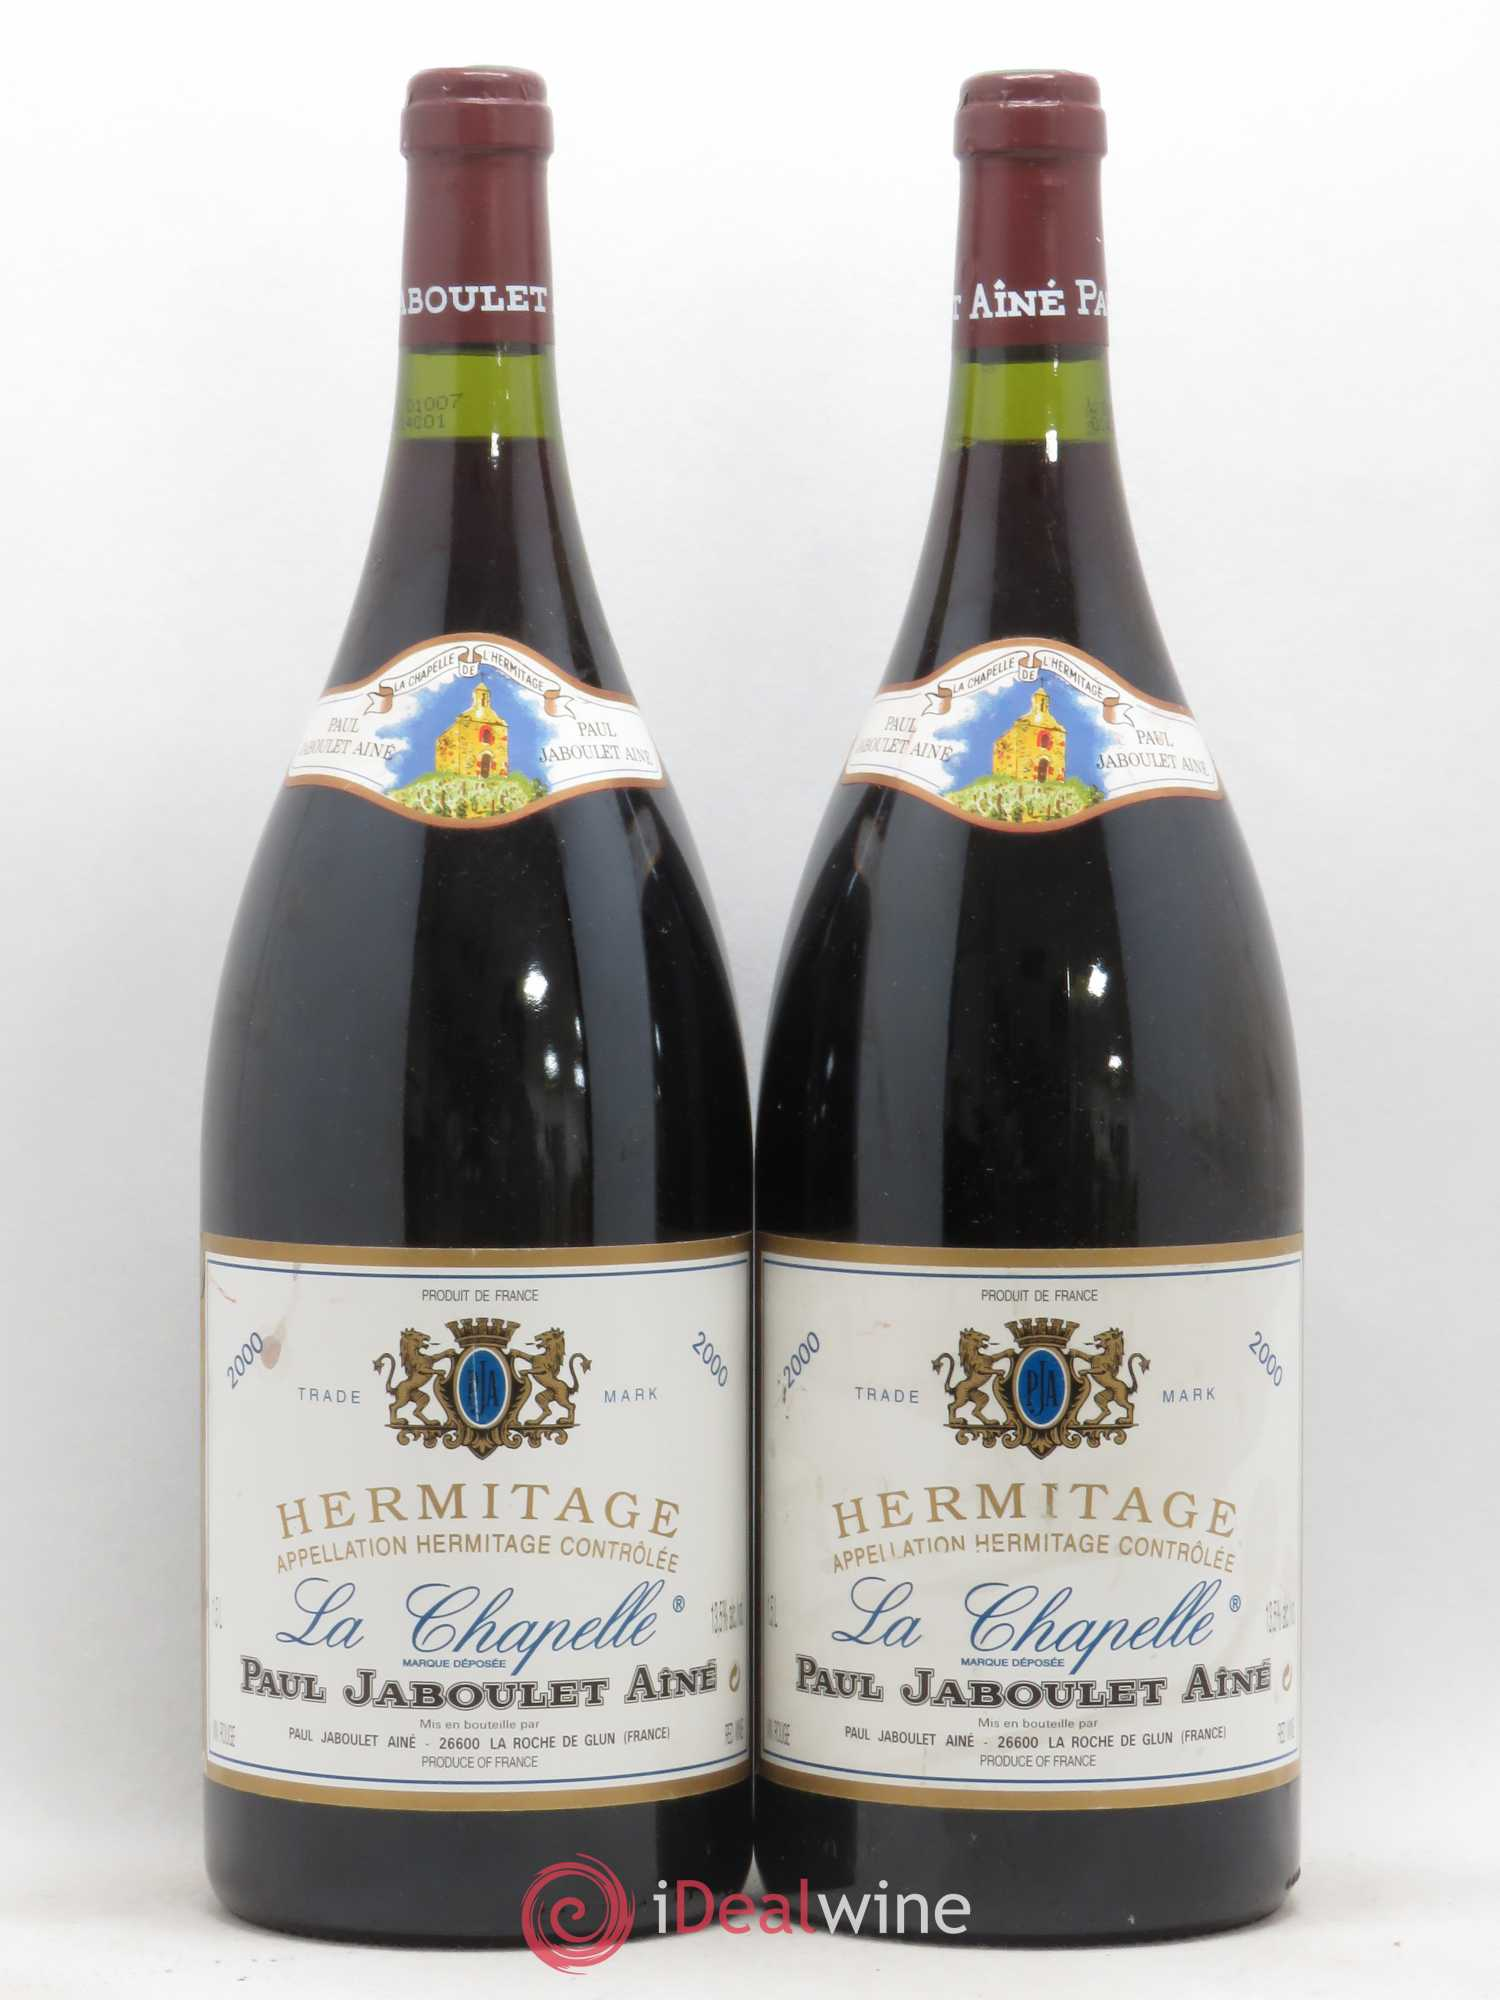 Hermitage La Chapelle Paul Jaboulet Aîné (no reserve) 2000 - Lot of 2 Magnums